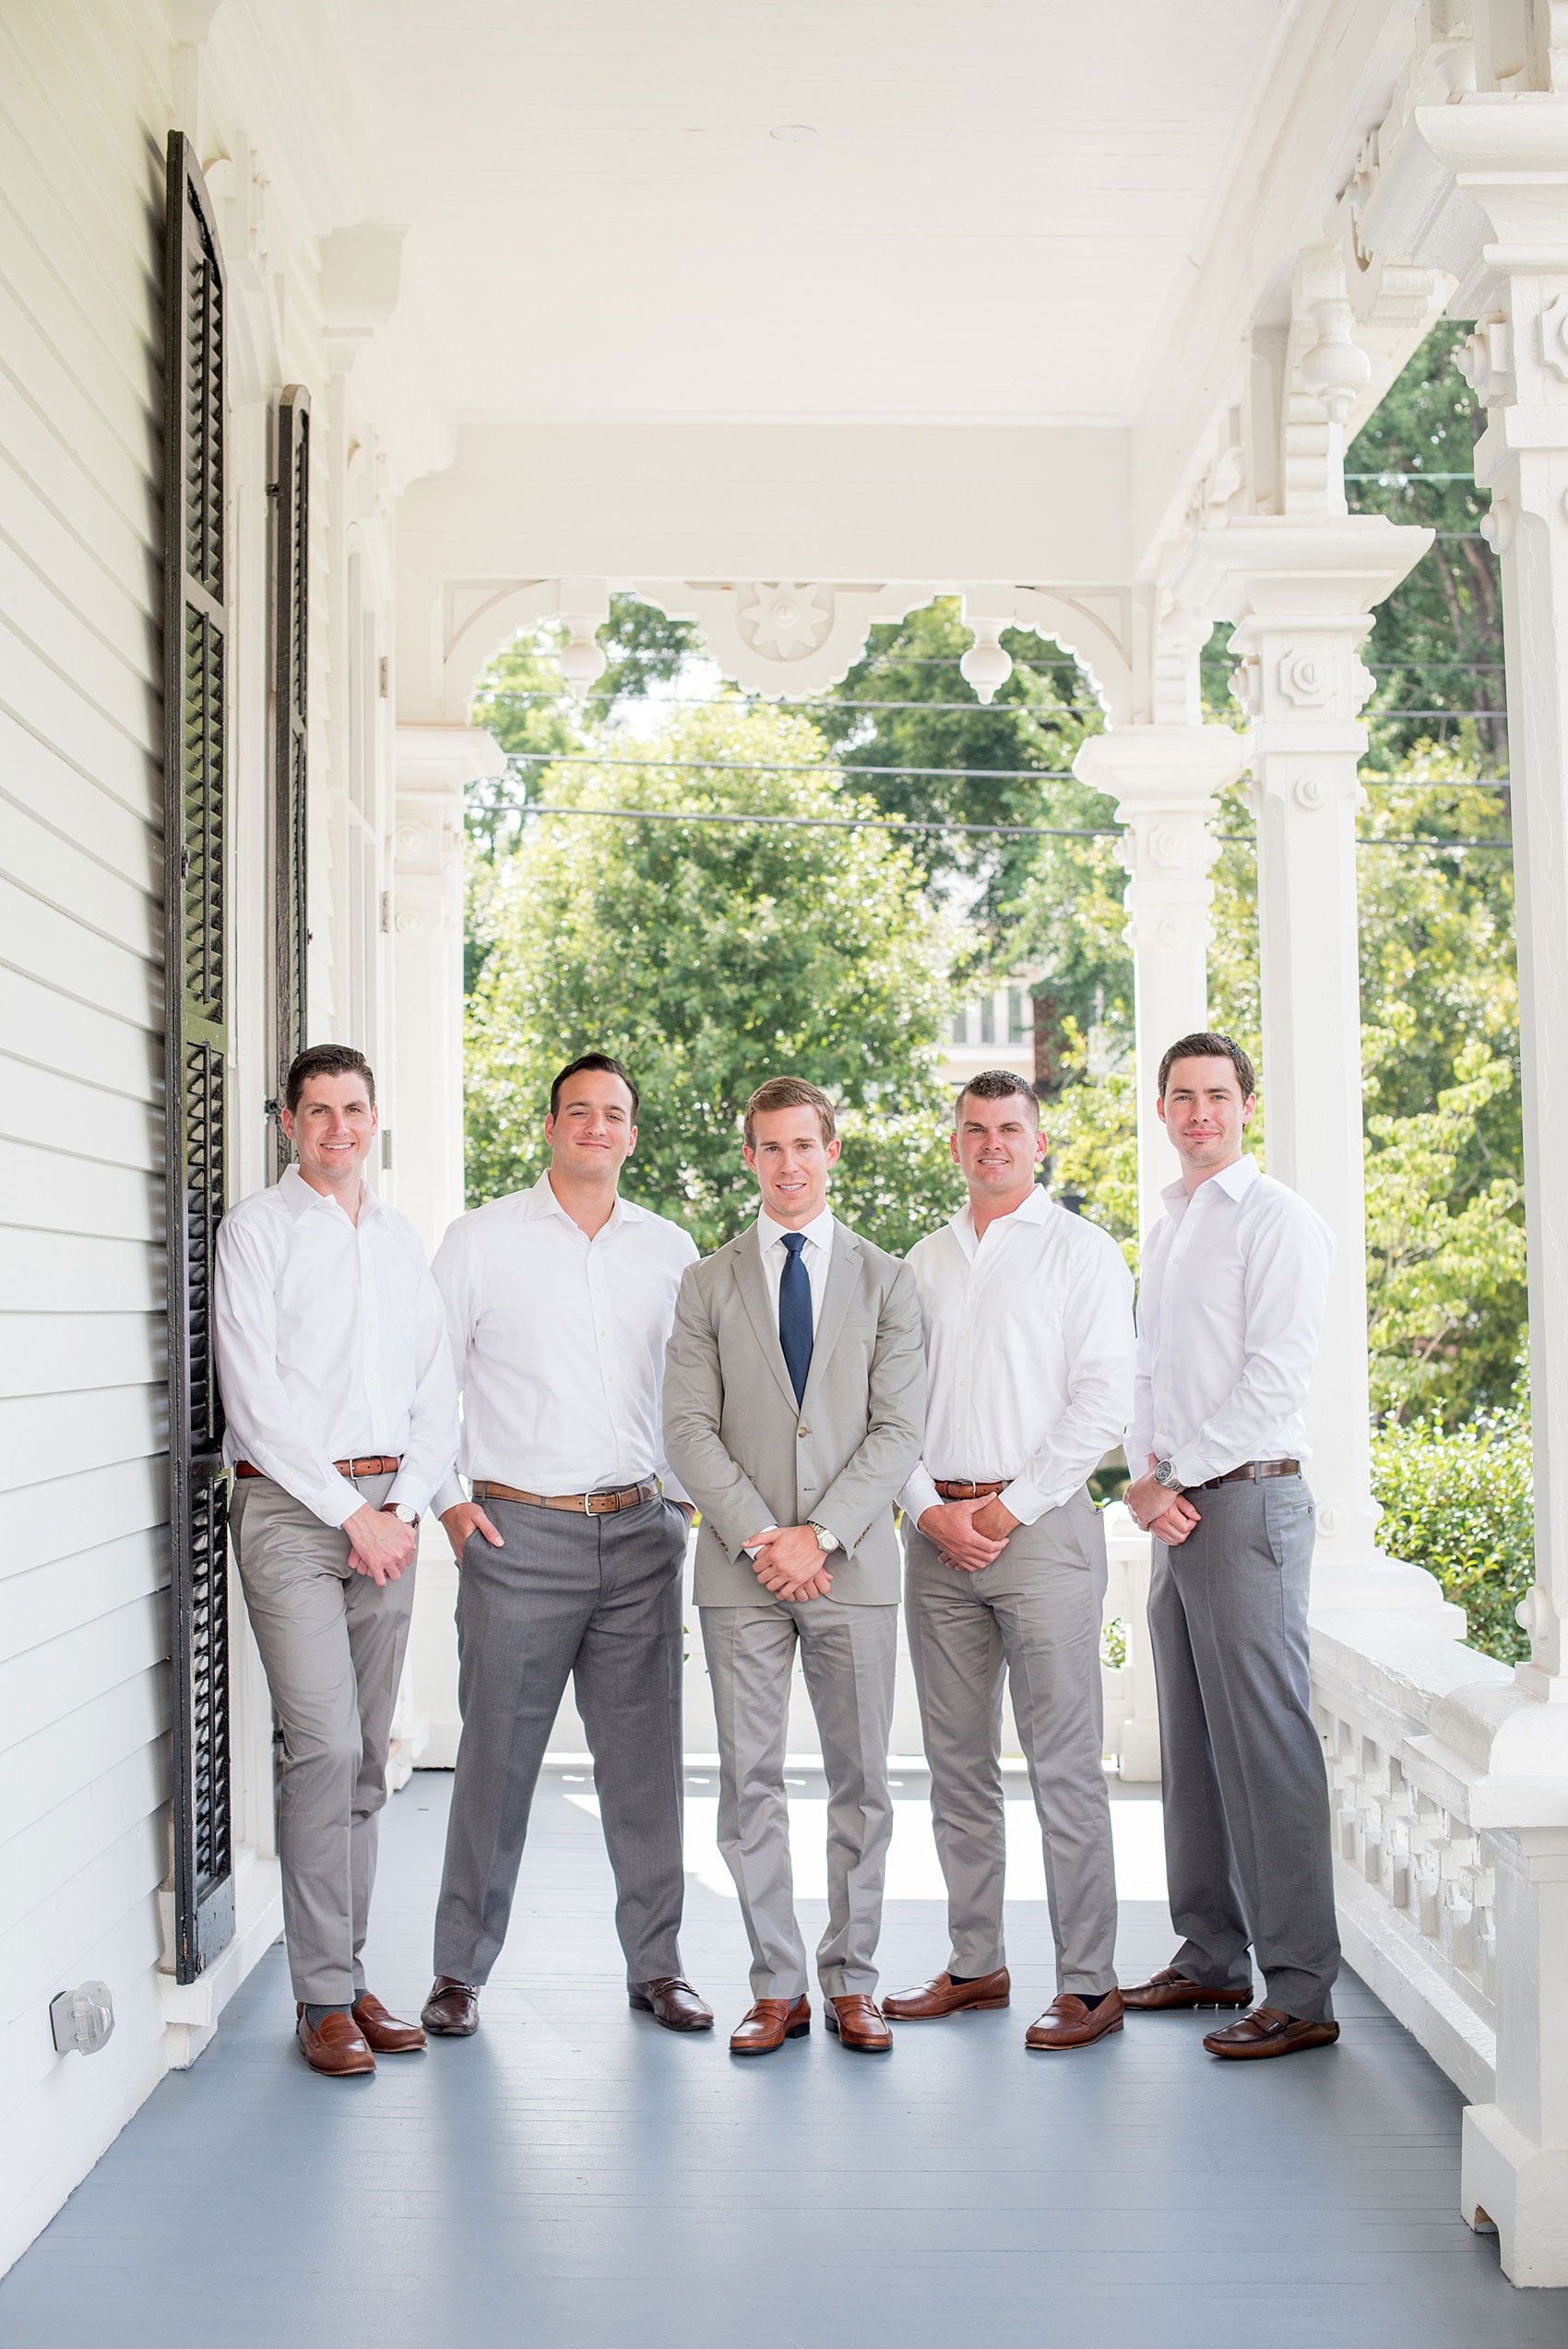 Mikkel Paige Photography wedding photos at The Merrimon-Wynne House in downtown Raleigh. The groom and his groomsmen in unique outfits - no tie and no jacket - for a summer wedding in the south.